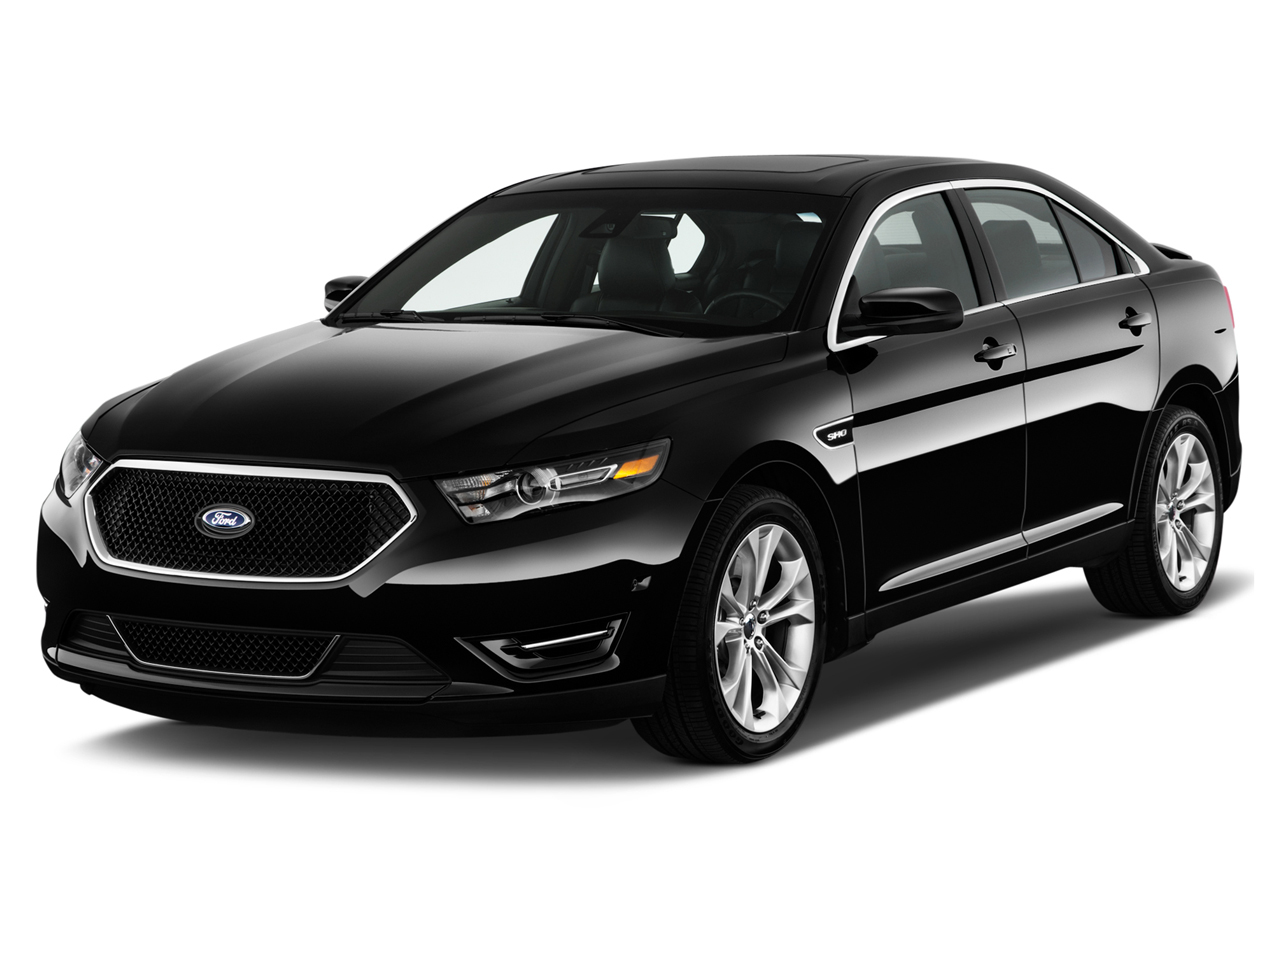 2016 ford taurus review ratings specs prices and photos the car connection. Black Bedroom Furniture Sets. Home Design Ideas